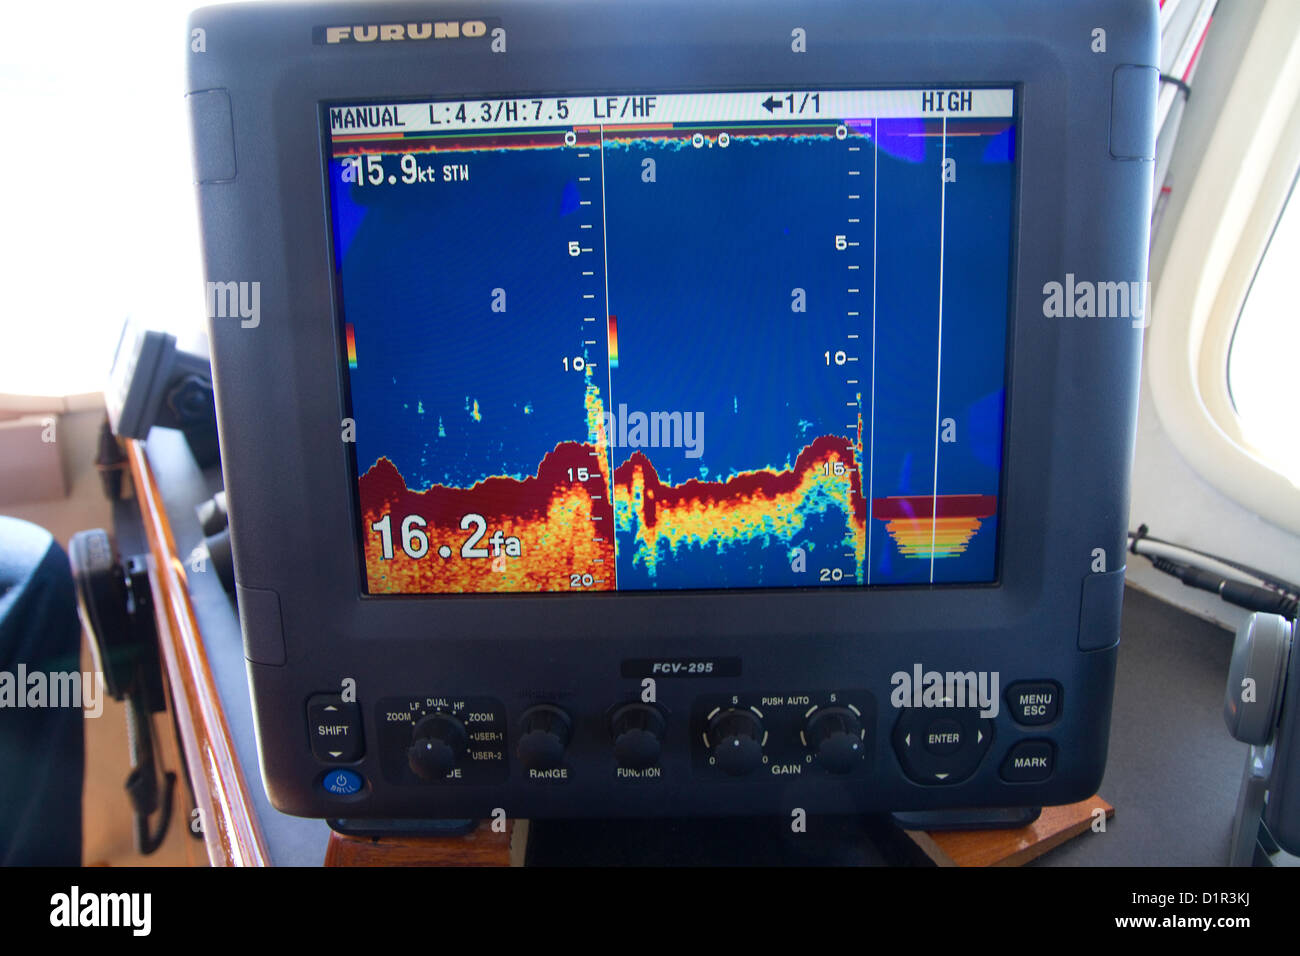 Charter fishing boat display of a fish finder/depth finder sonar in the Pacific Ocean, Oregon, USA. - Stock Image